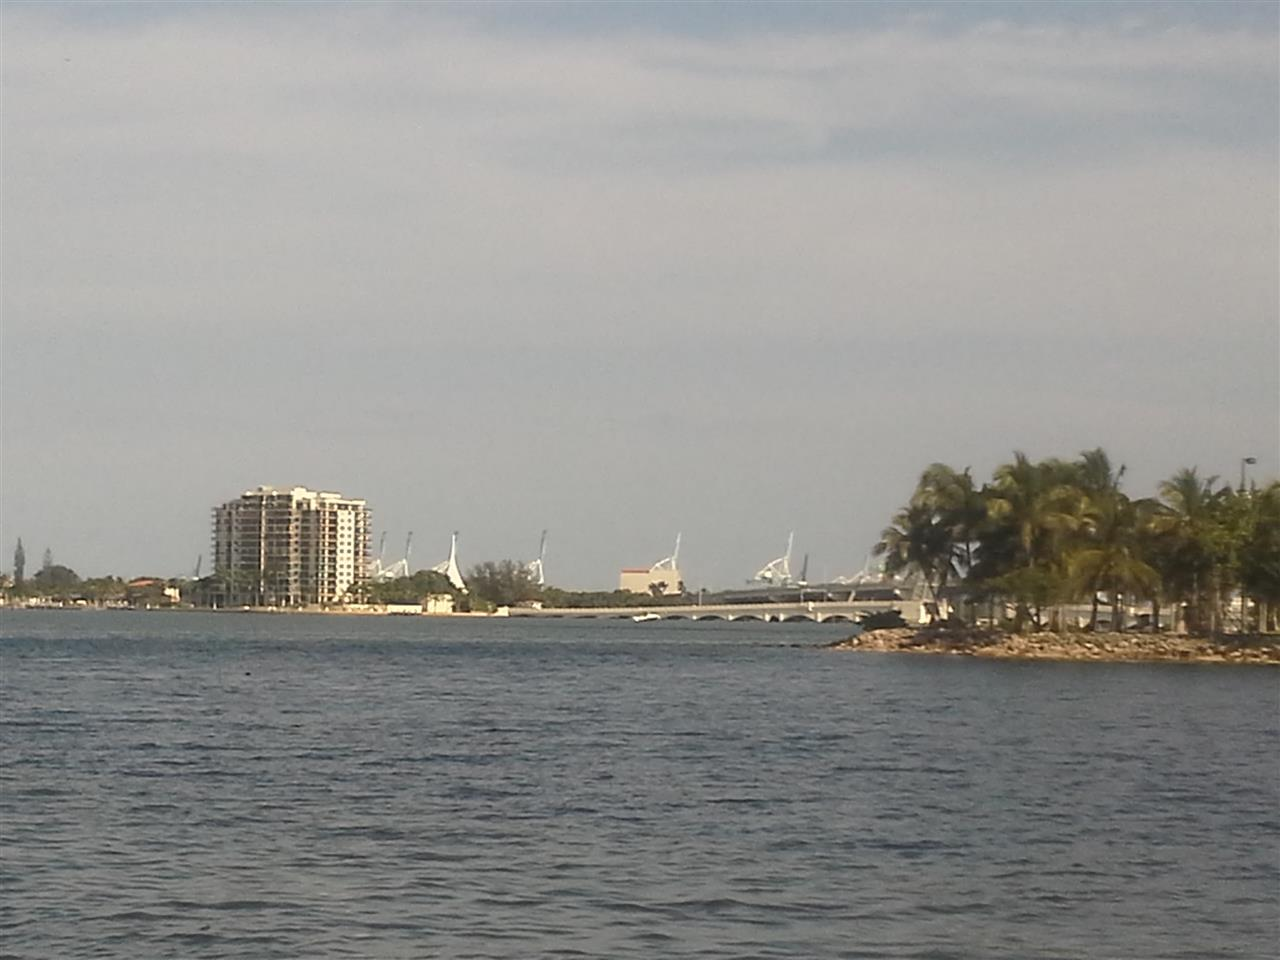 Miami Beach from Miami Bay